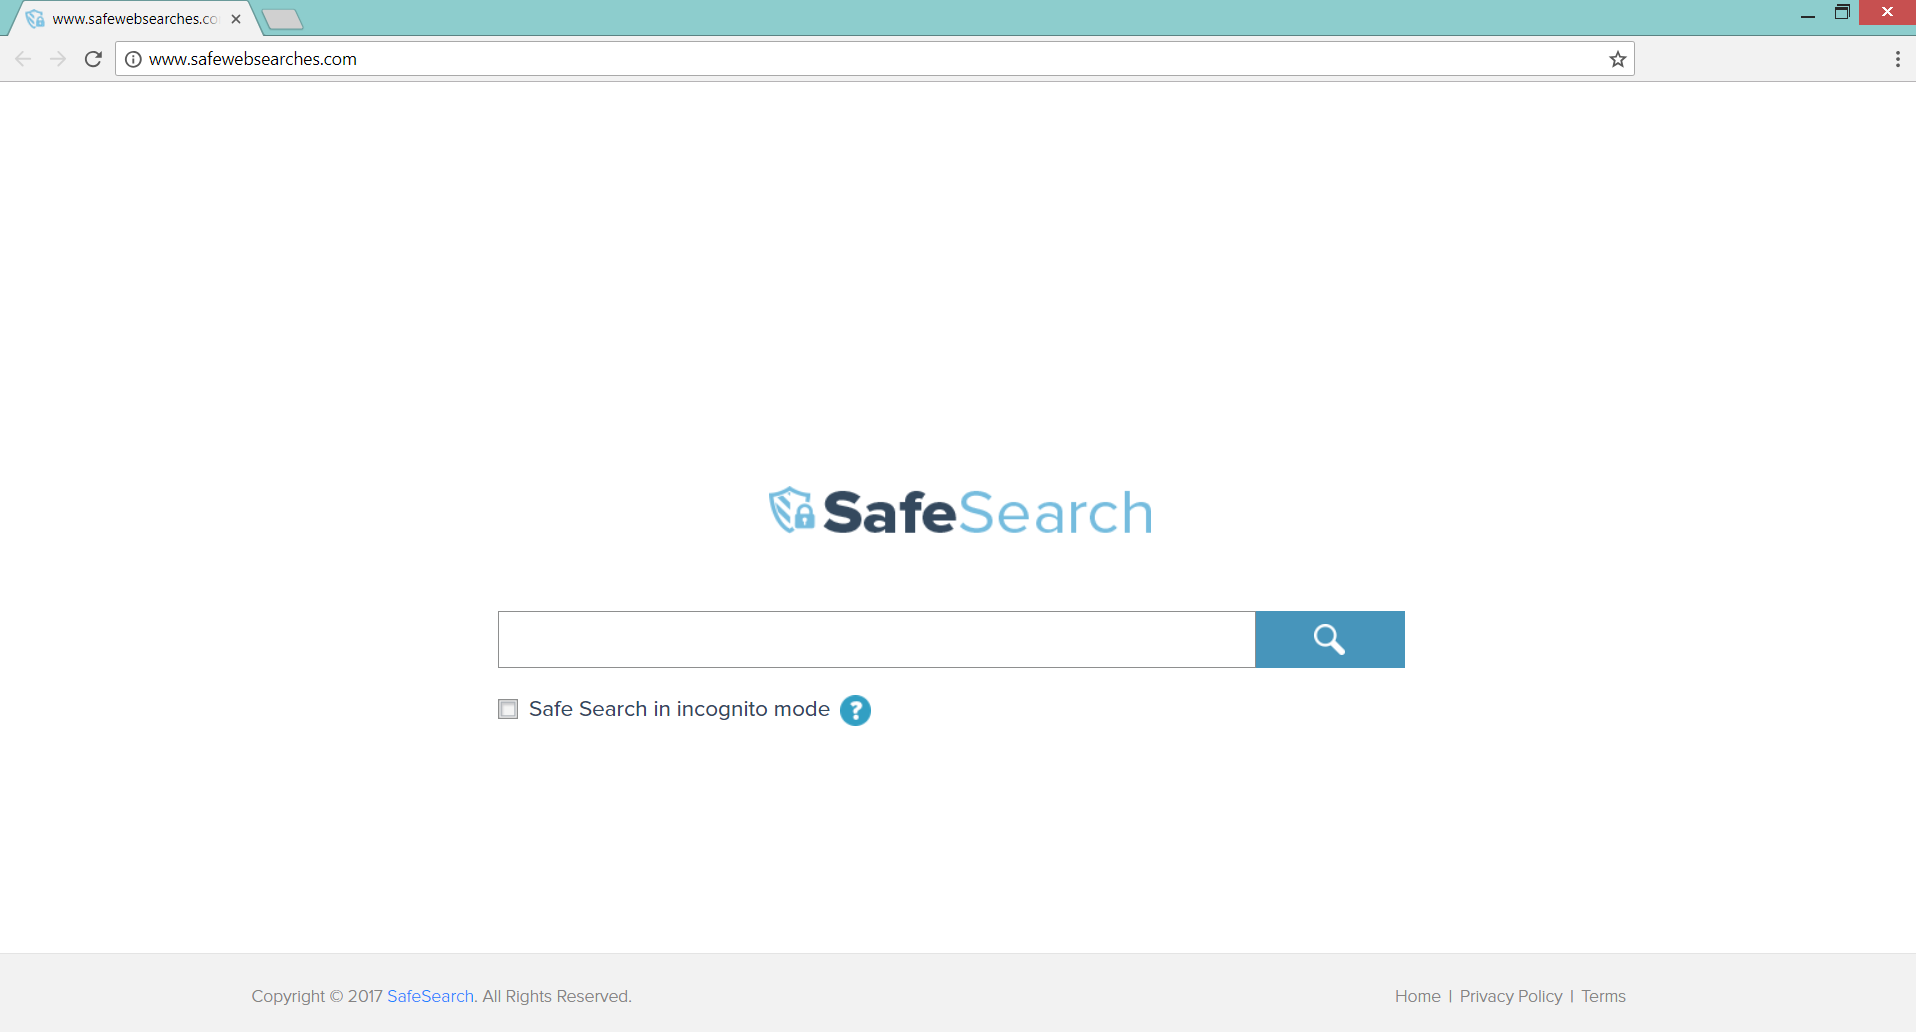 Safewebsearches.com redirect on affected chrome browser sensorstechforum com